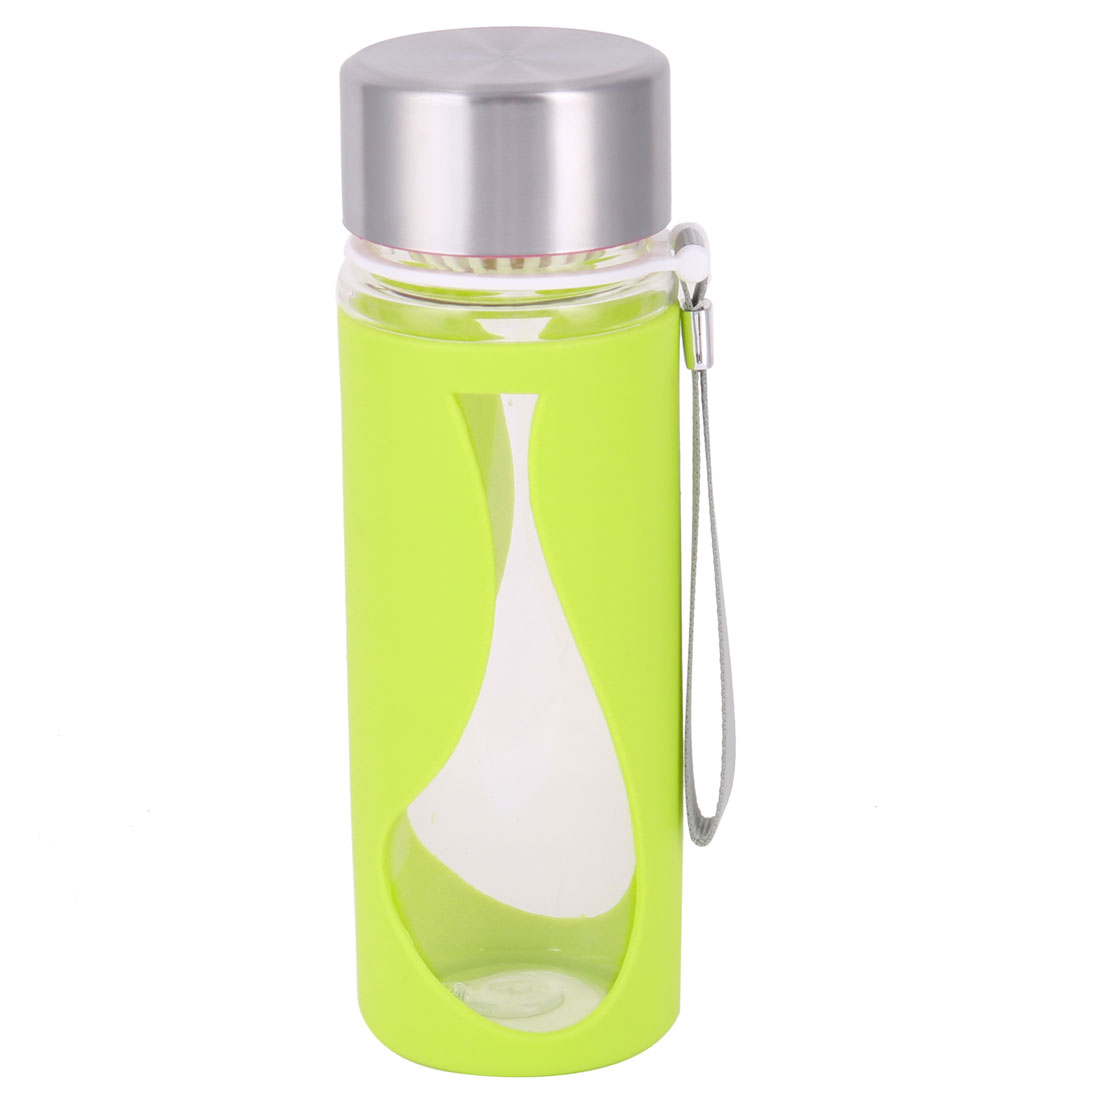 Household Outside Plastic Detachable Drinking Tea Water Cup Bottle Green 500ml